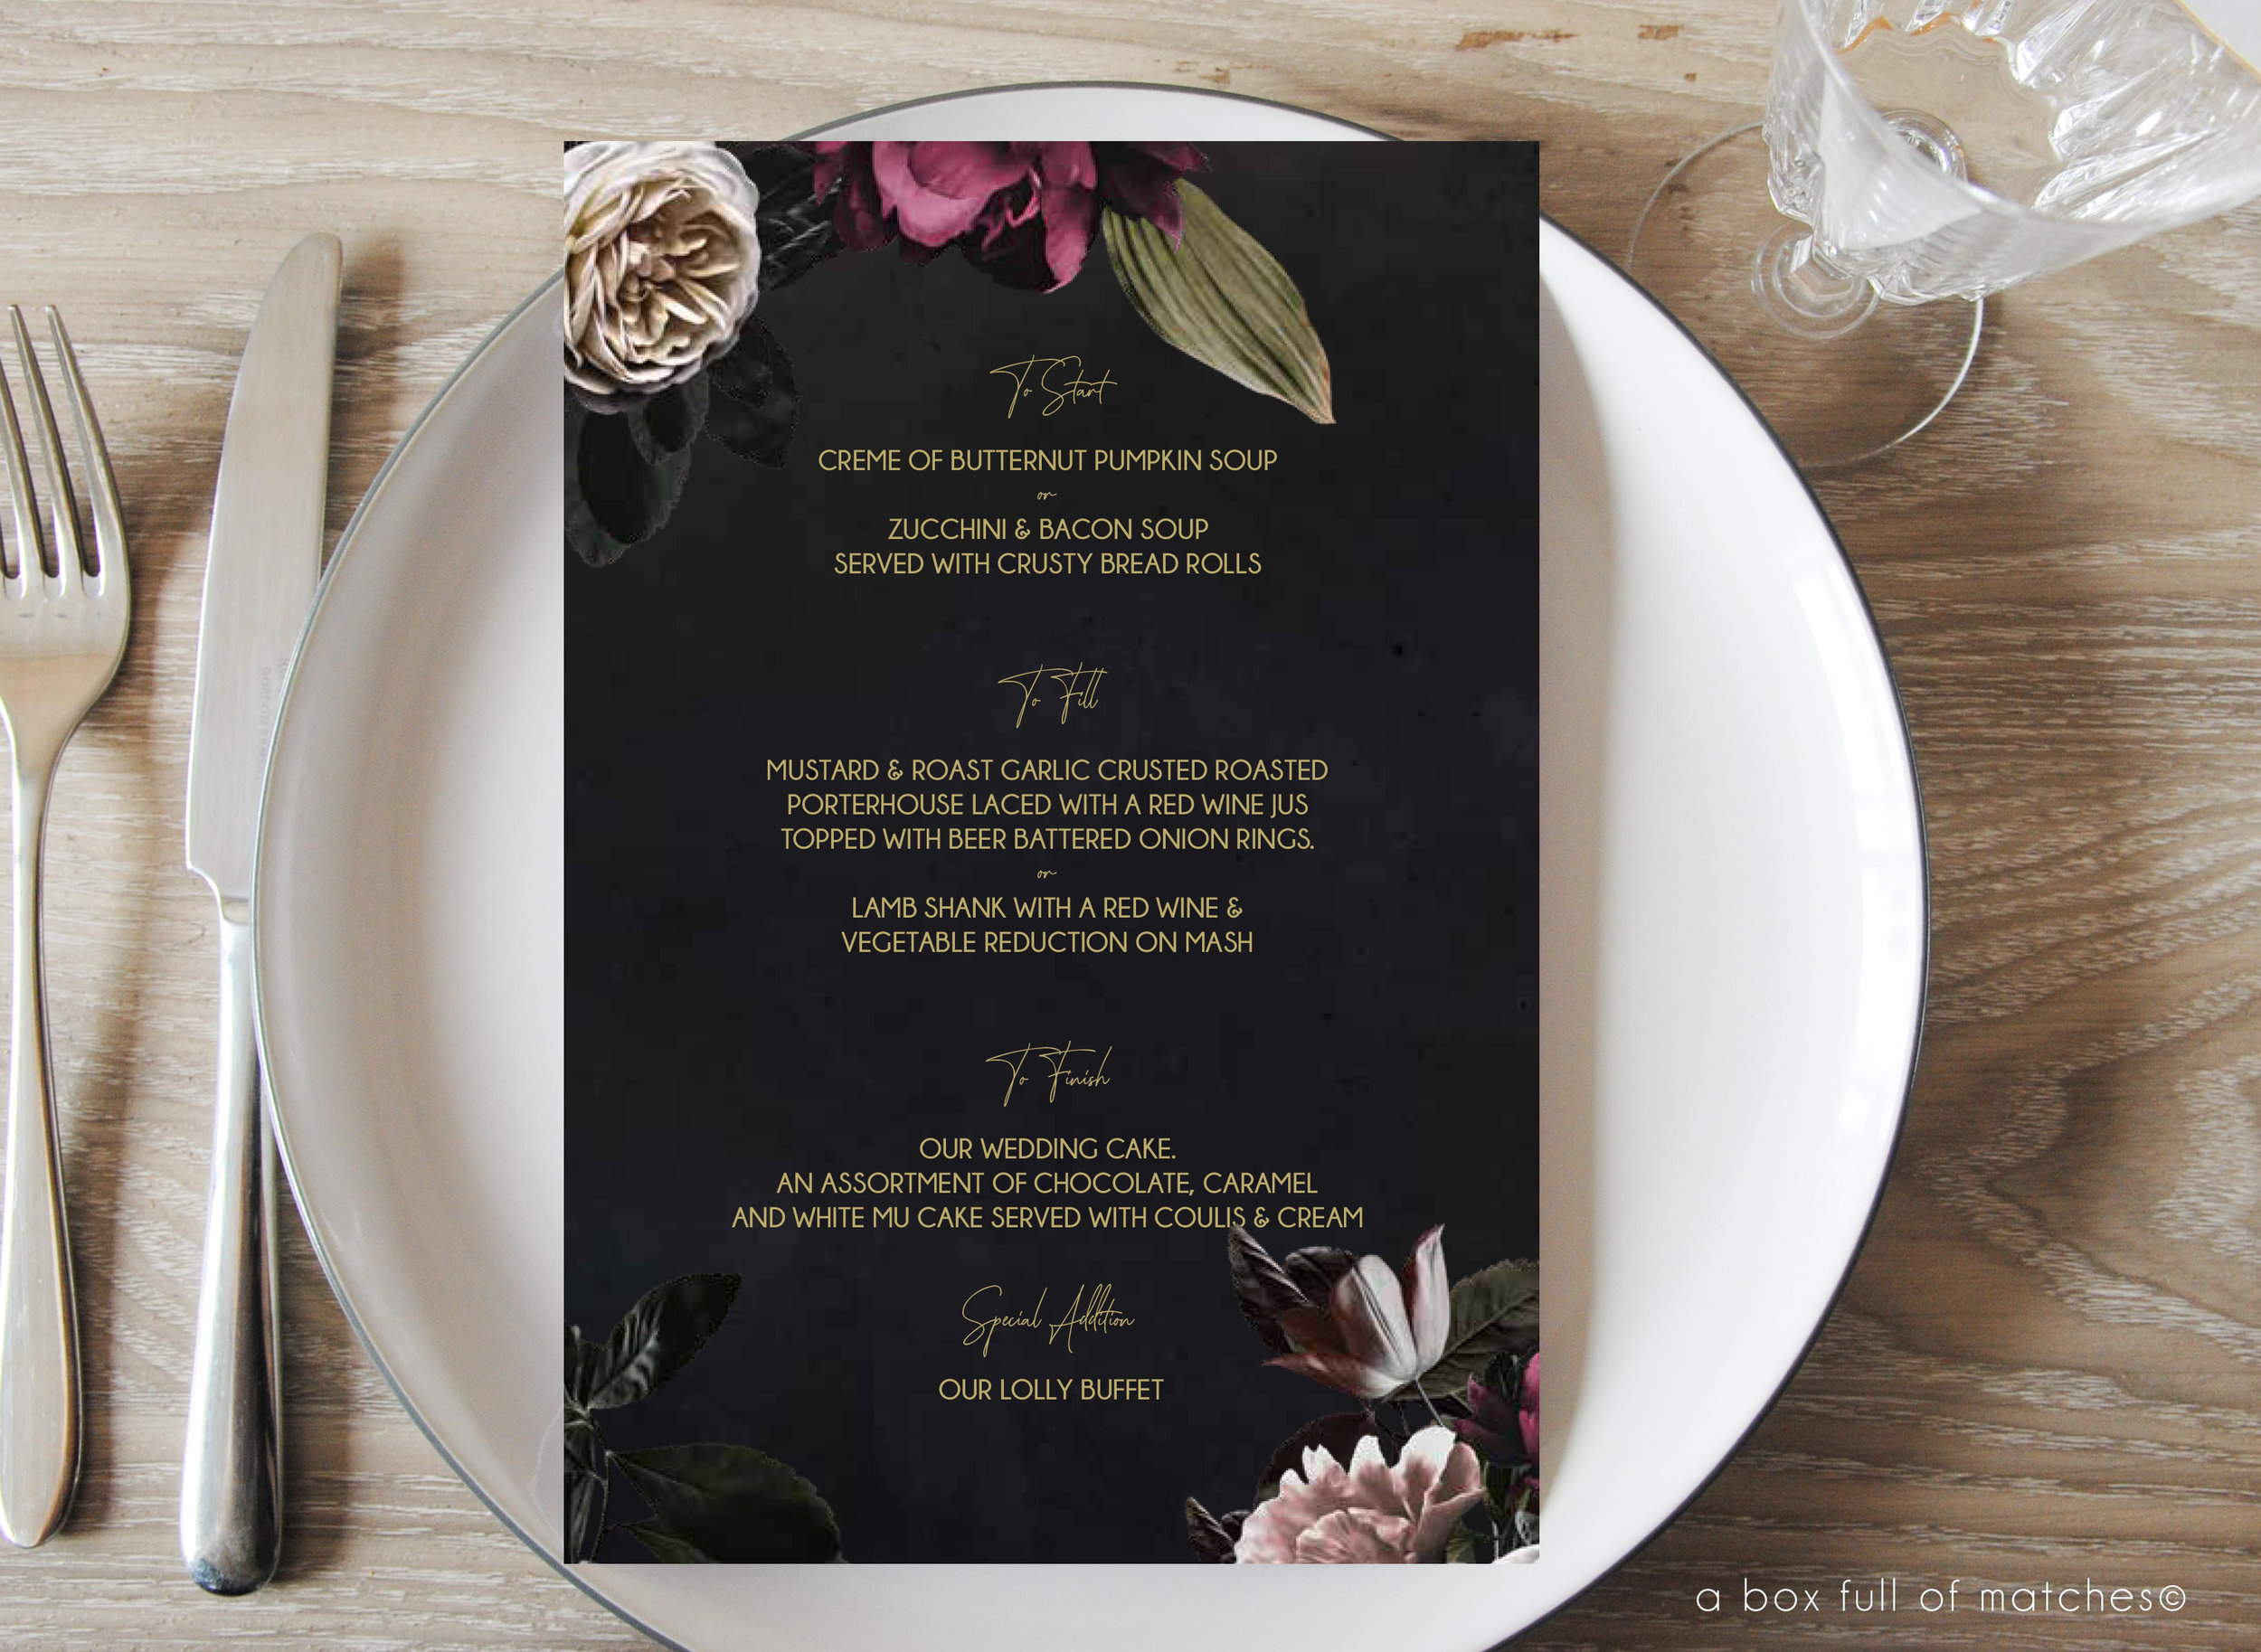 On the Day Stationery - From Save the Dates, to Place Cards, Menus, Table Numbers, Seating Chart, Welcome Signs, Stickers, Gift Labels, Guest Book Signage,Bar Signs, Wishing Well Signs, Coasters and much More!